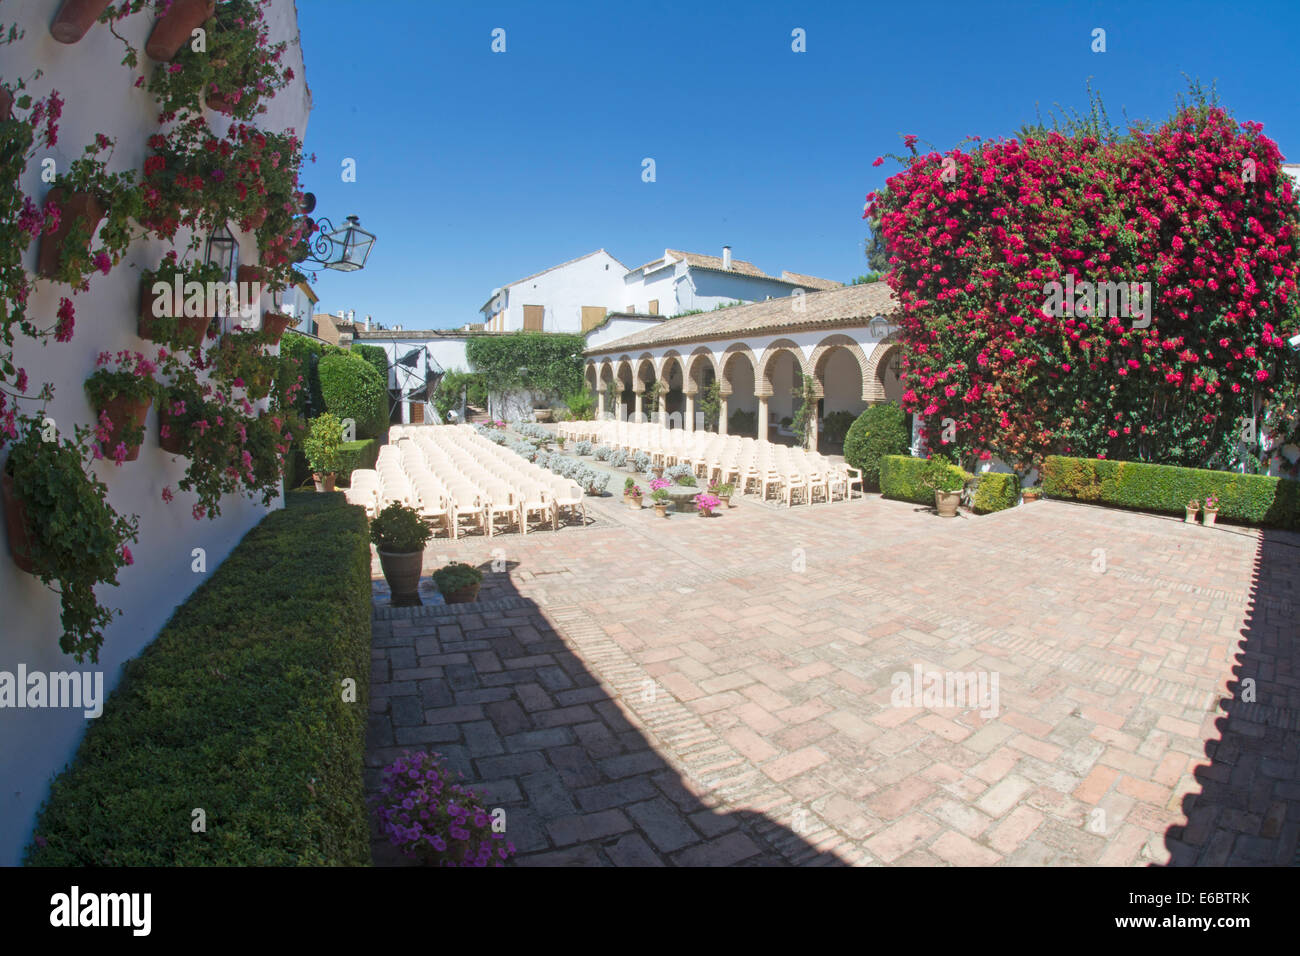 The Courtyard of the Columns, Courtyards of Viana, Cordoba, Andalusia, Spain, Europe - Stock Image